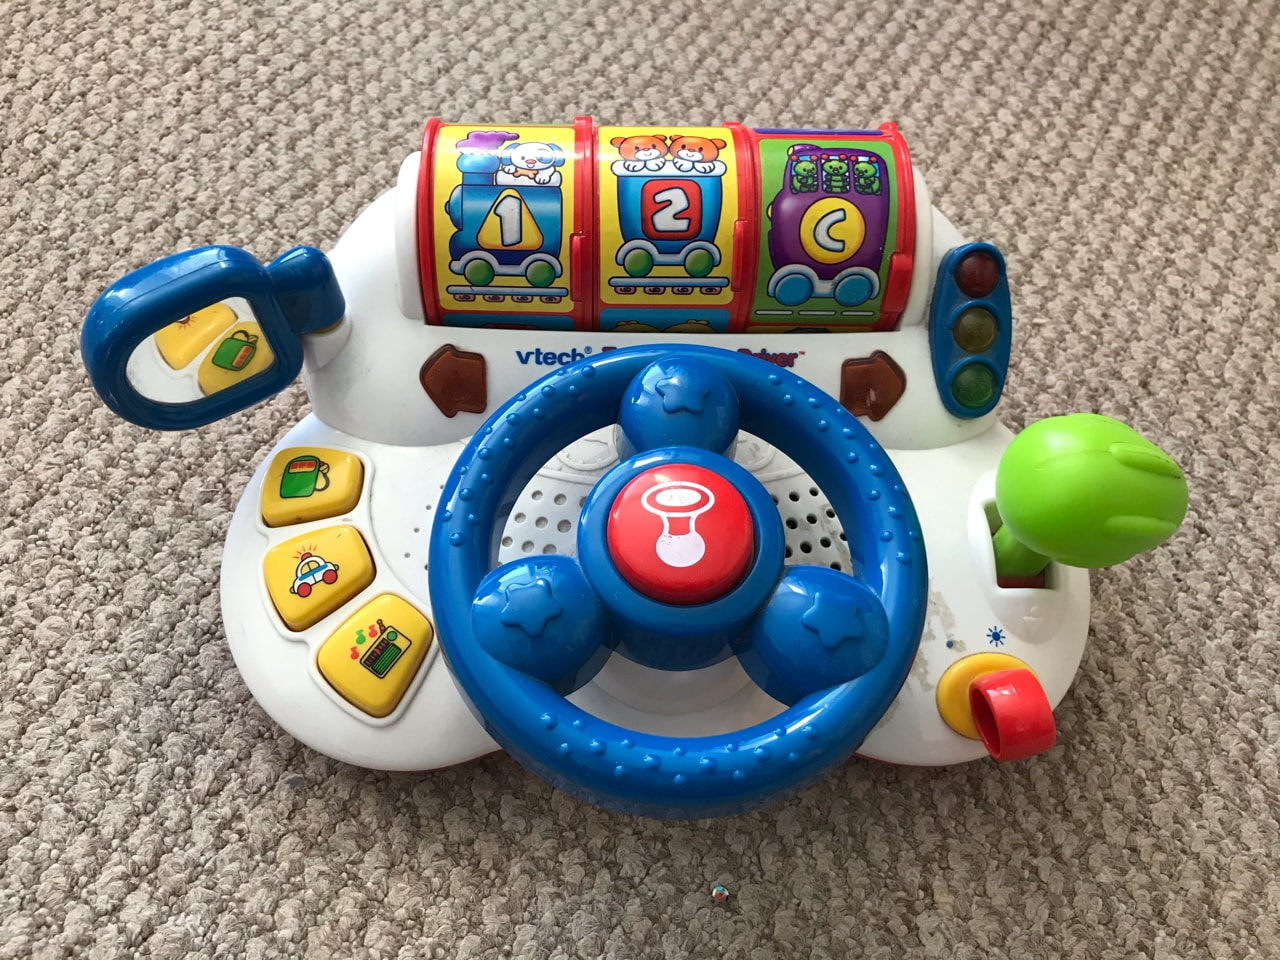 Vtech Driving Toy